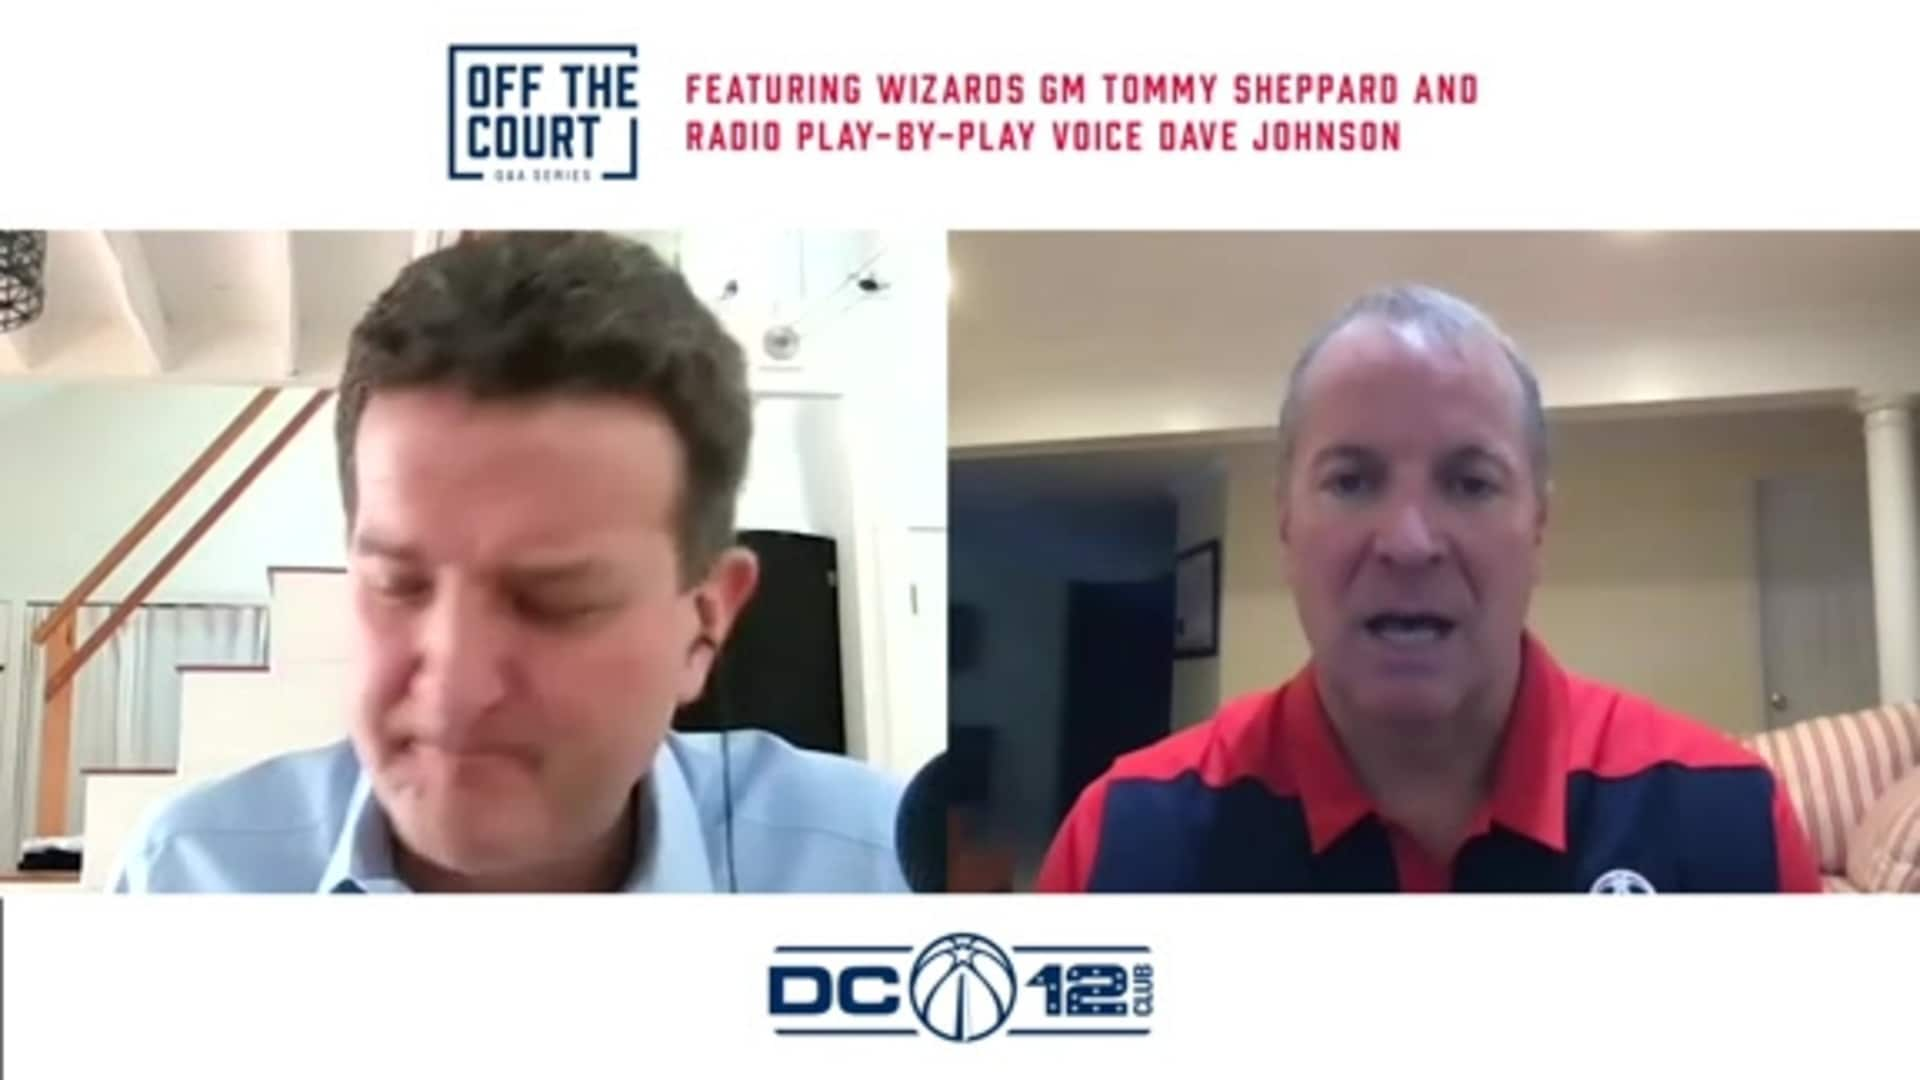 DC 12 Club Off the Court Series: Tommy Sheppard